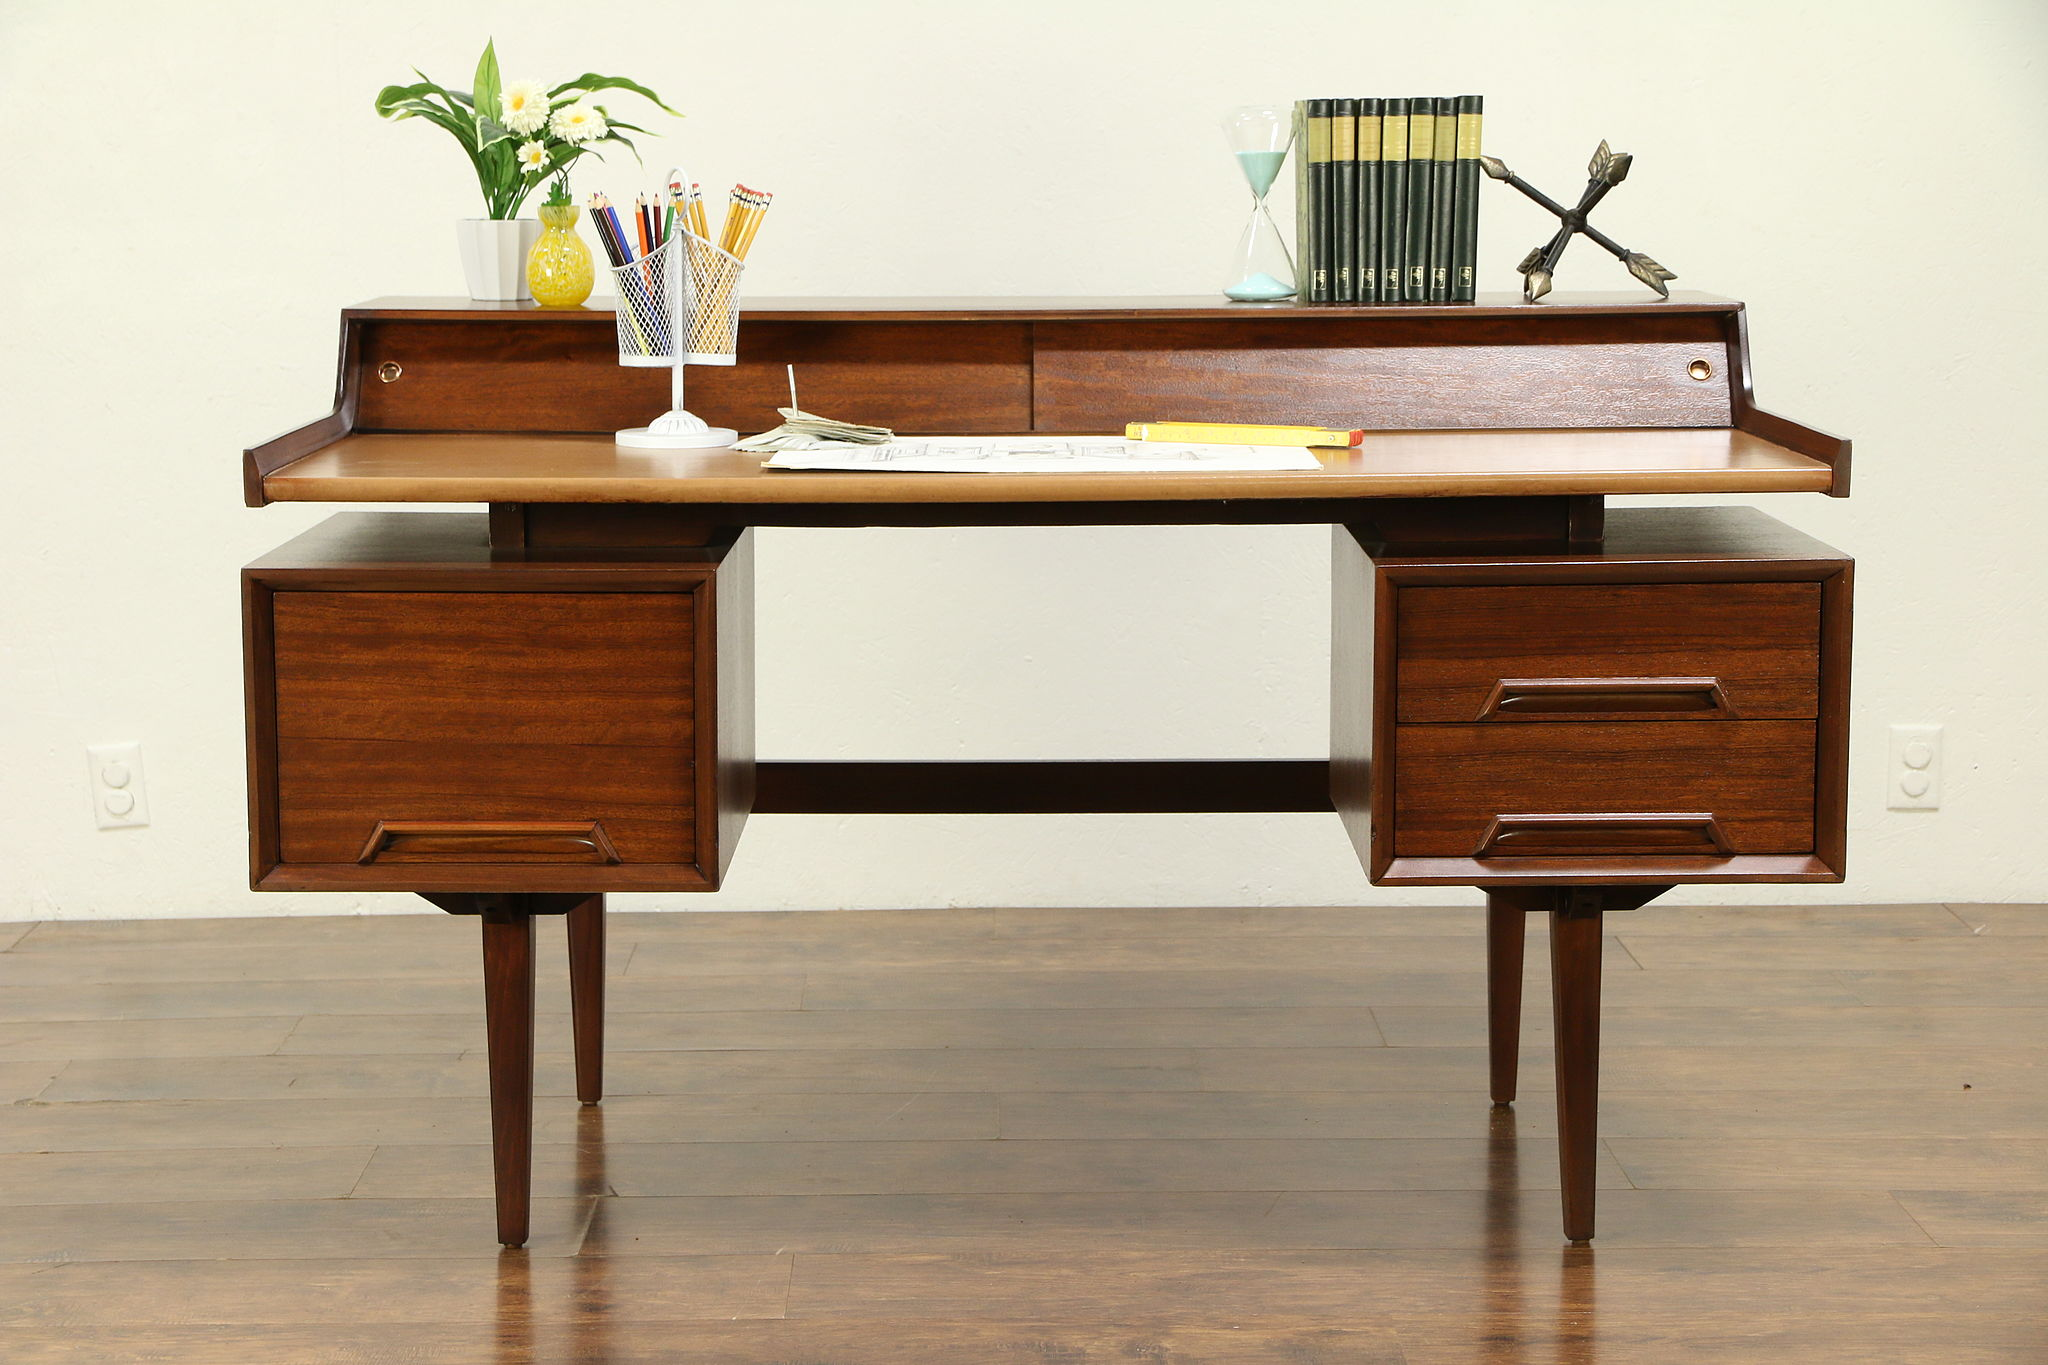 Sold Midcentury Modern Vintage Mahogany Desk Milo Baughman Perspective Drexel 30702 Harp Gallery Antiques Furniture